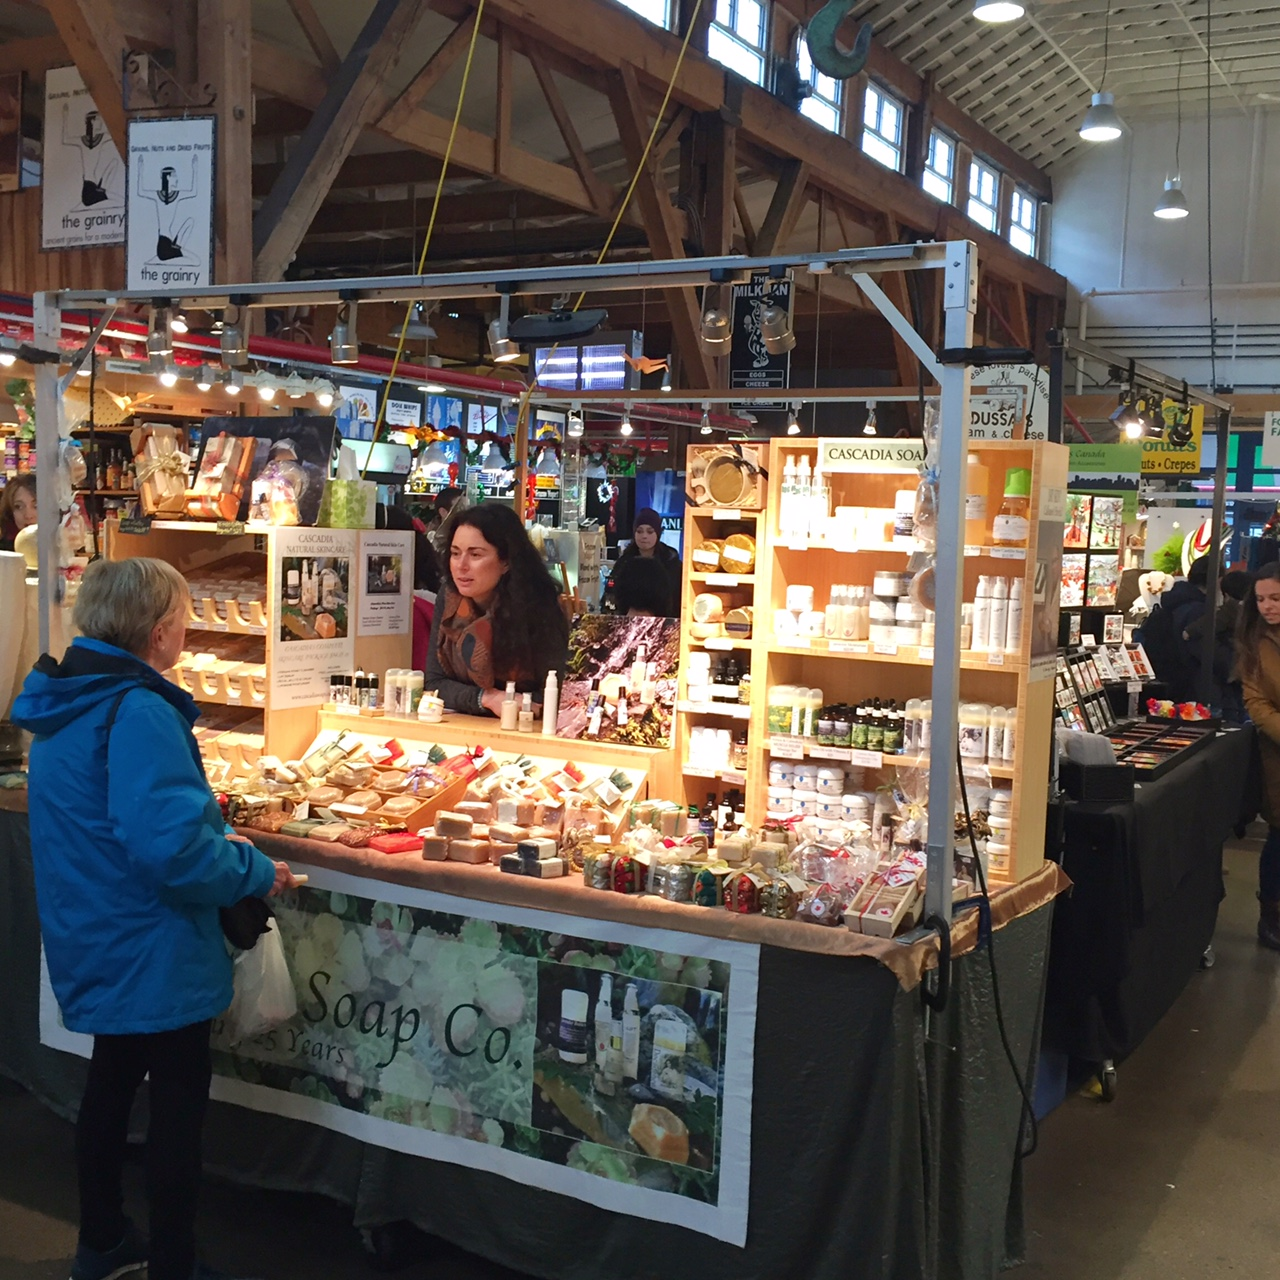 Artisanal everything is just the norm here in Granville Island